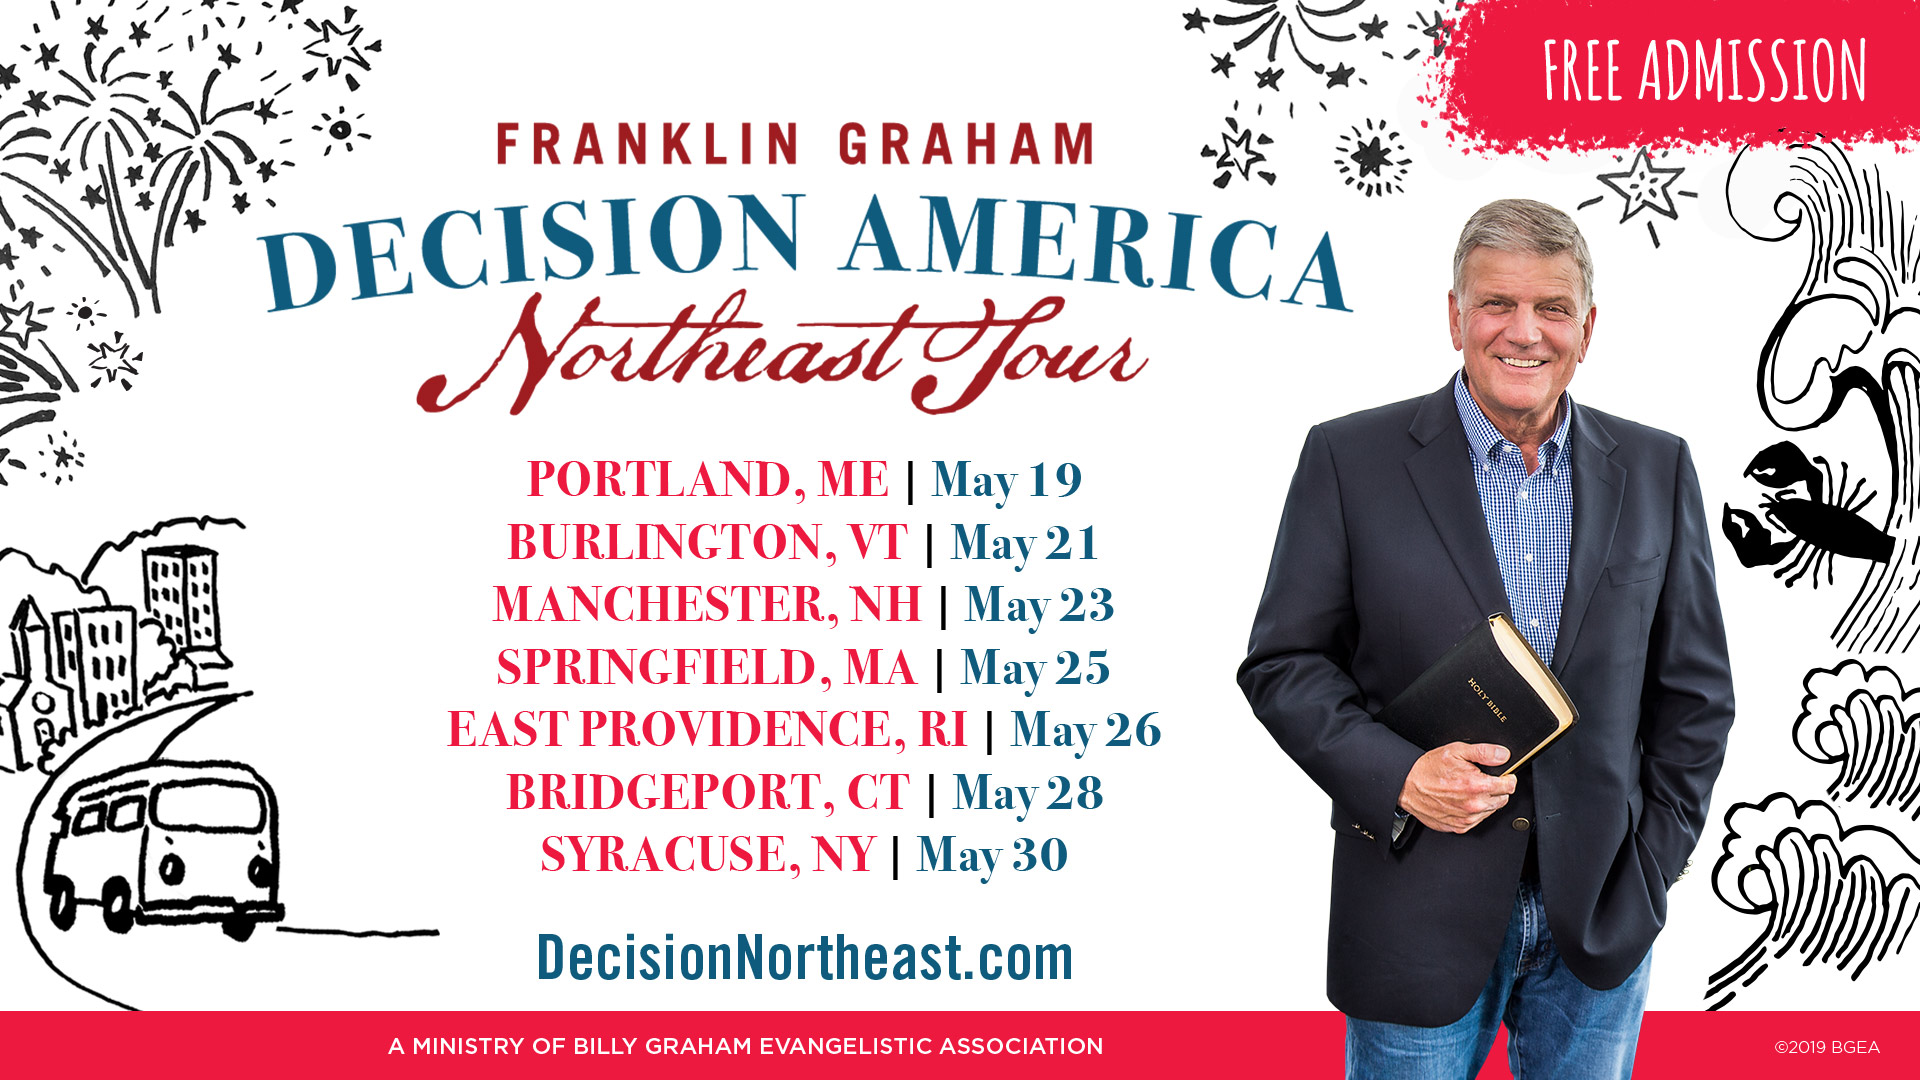 Mark your calendar: Thurs. May 23. Franklin Graham w/musical guest Dave Crowder.